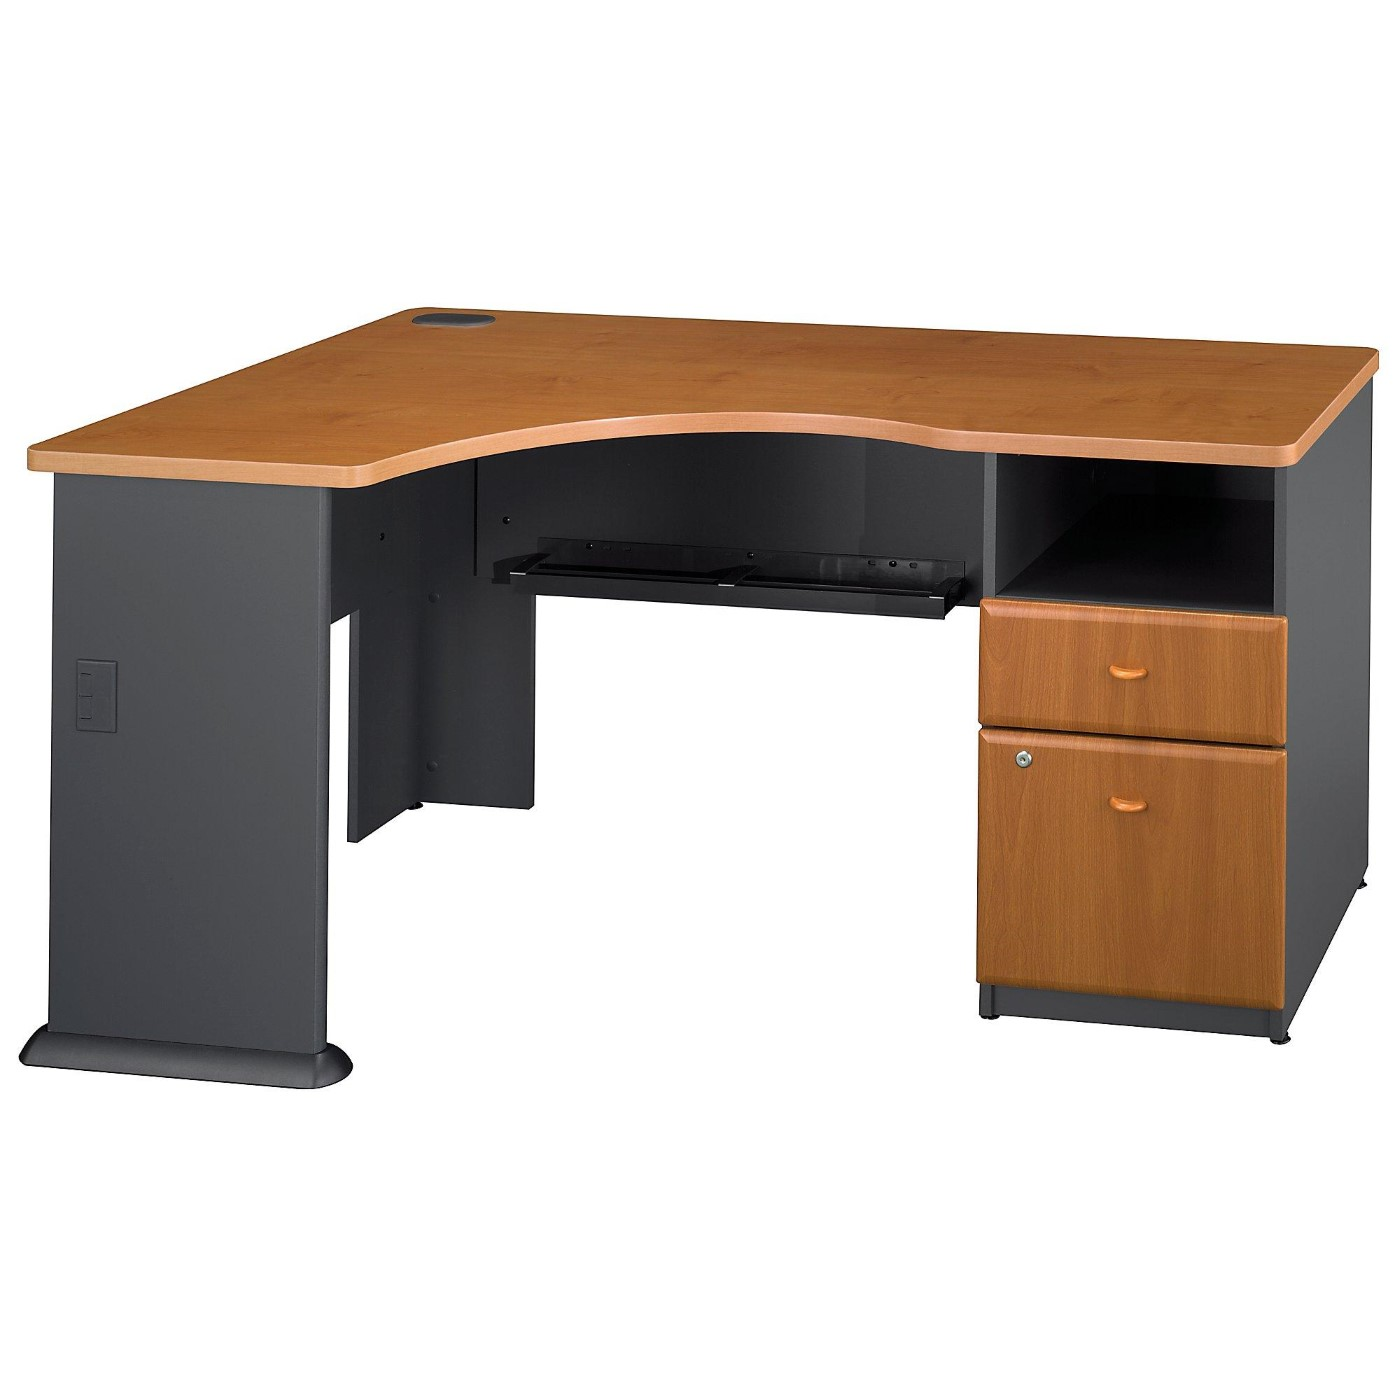 BUSH BUSINESS FURNITURE SERIES A CORNER DESK WITH 2 DRAWER PEDESTAL. FREE SHIPPING  VIDEO BELOW.